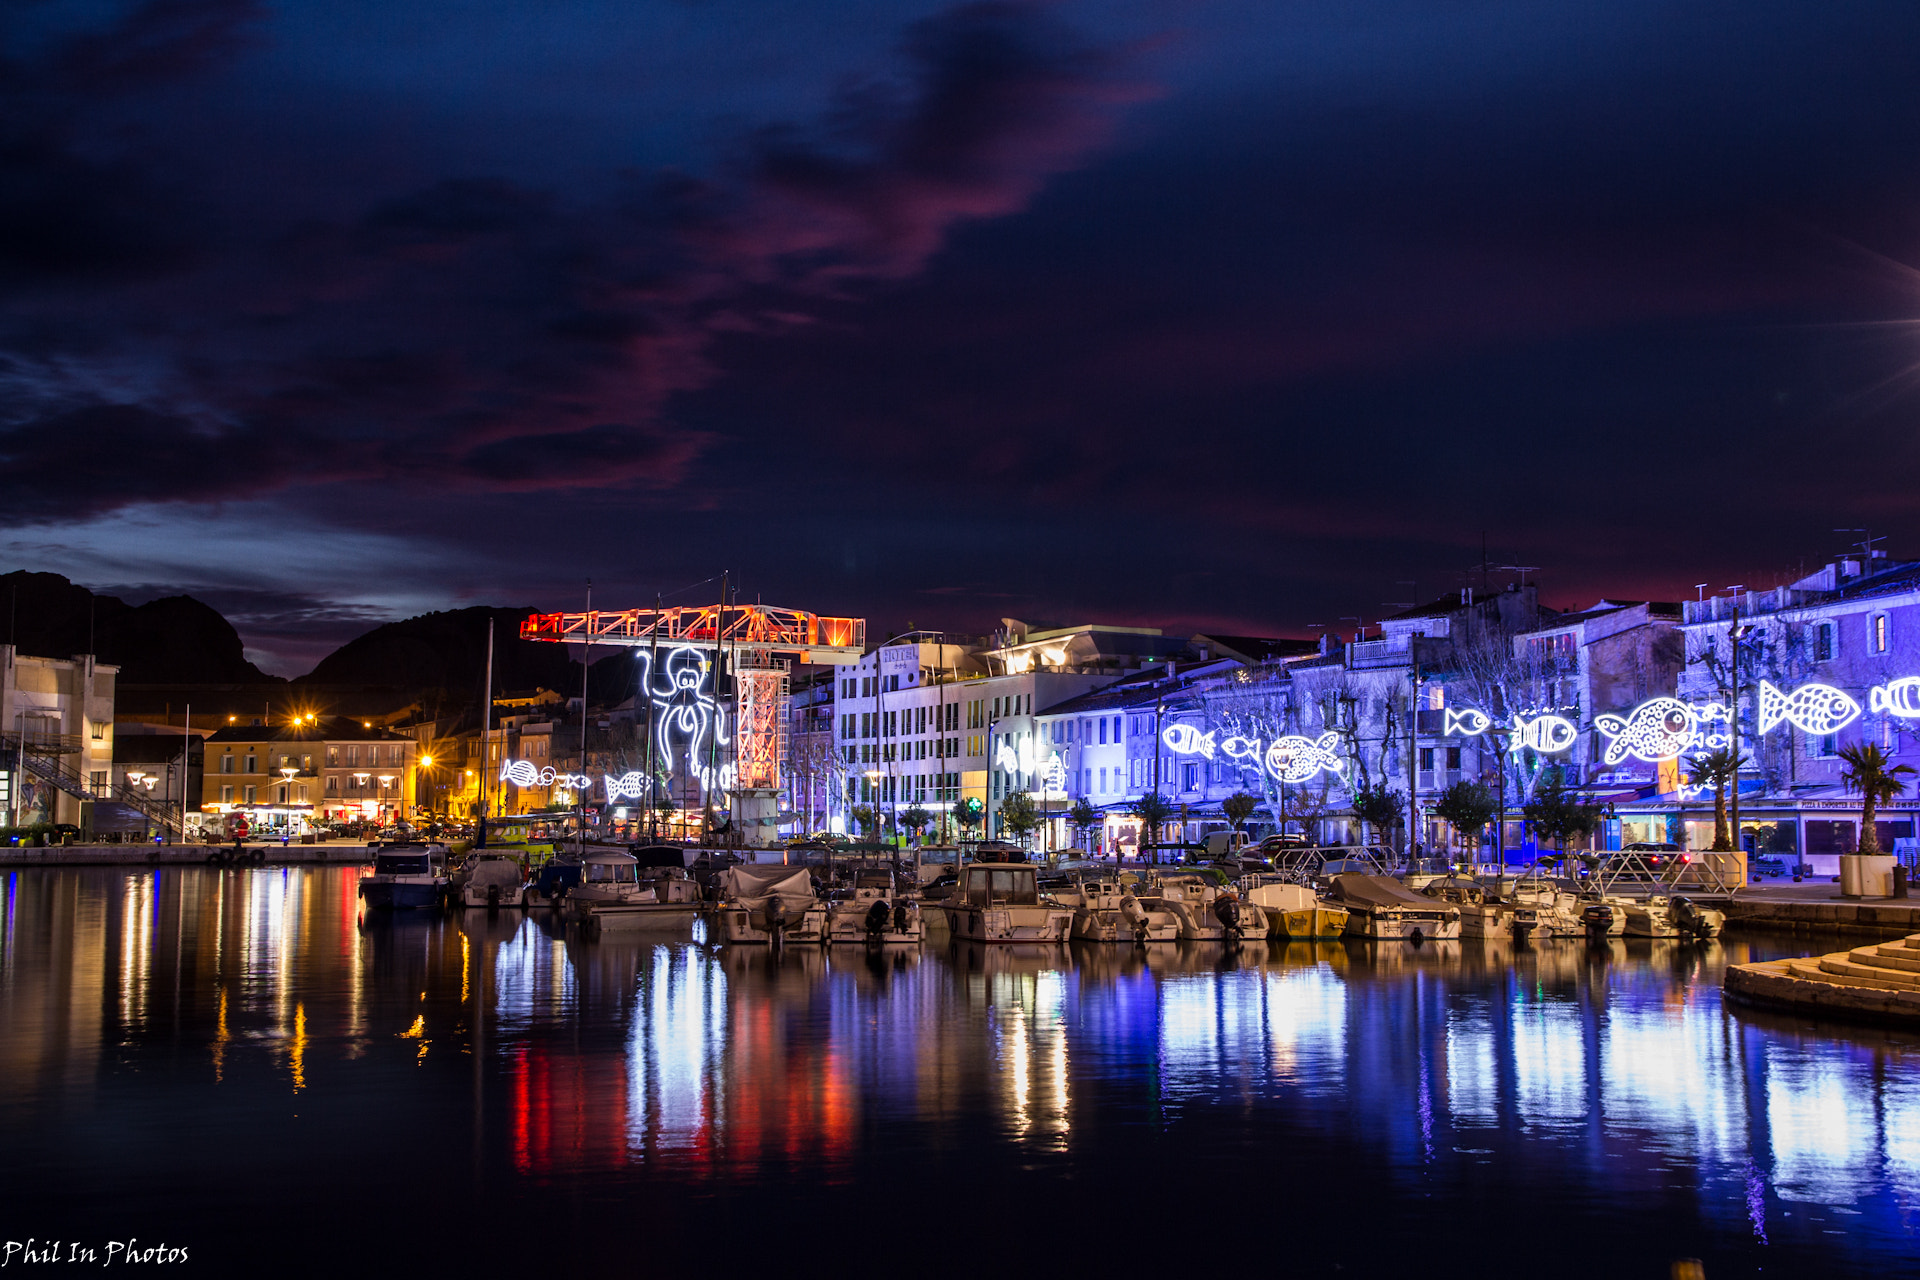 Photograph La Ciotat en Fêtes by Philippe Jacquetin on 500px